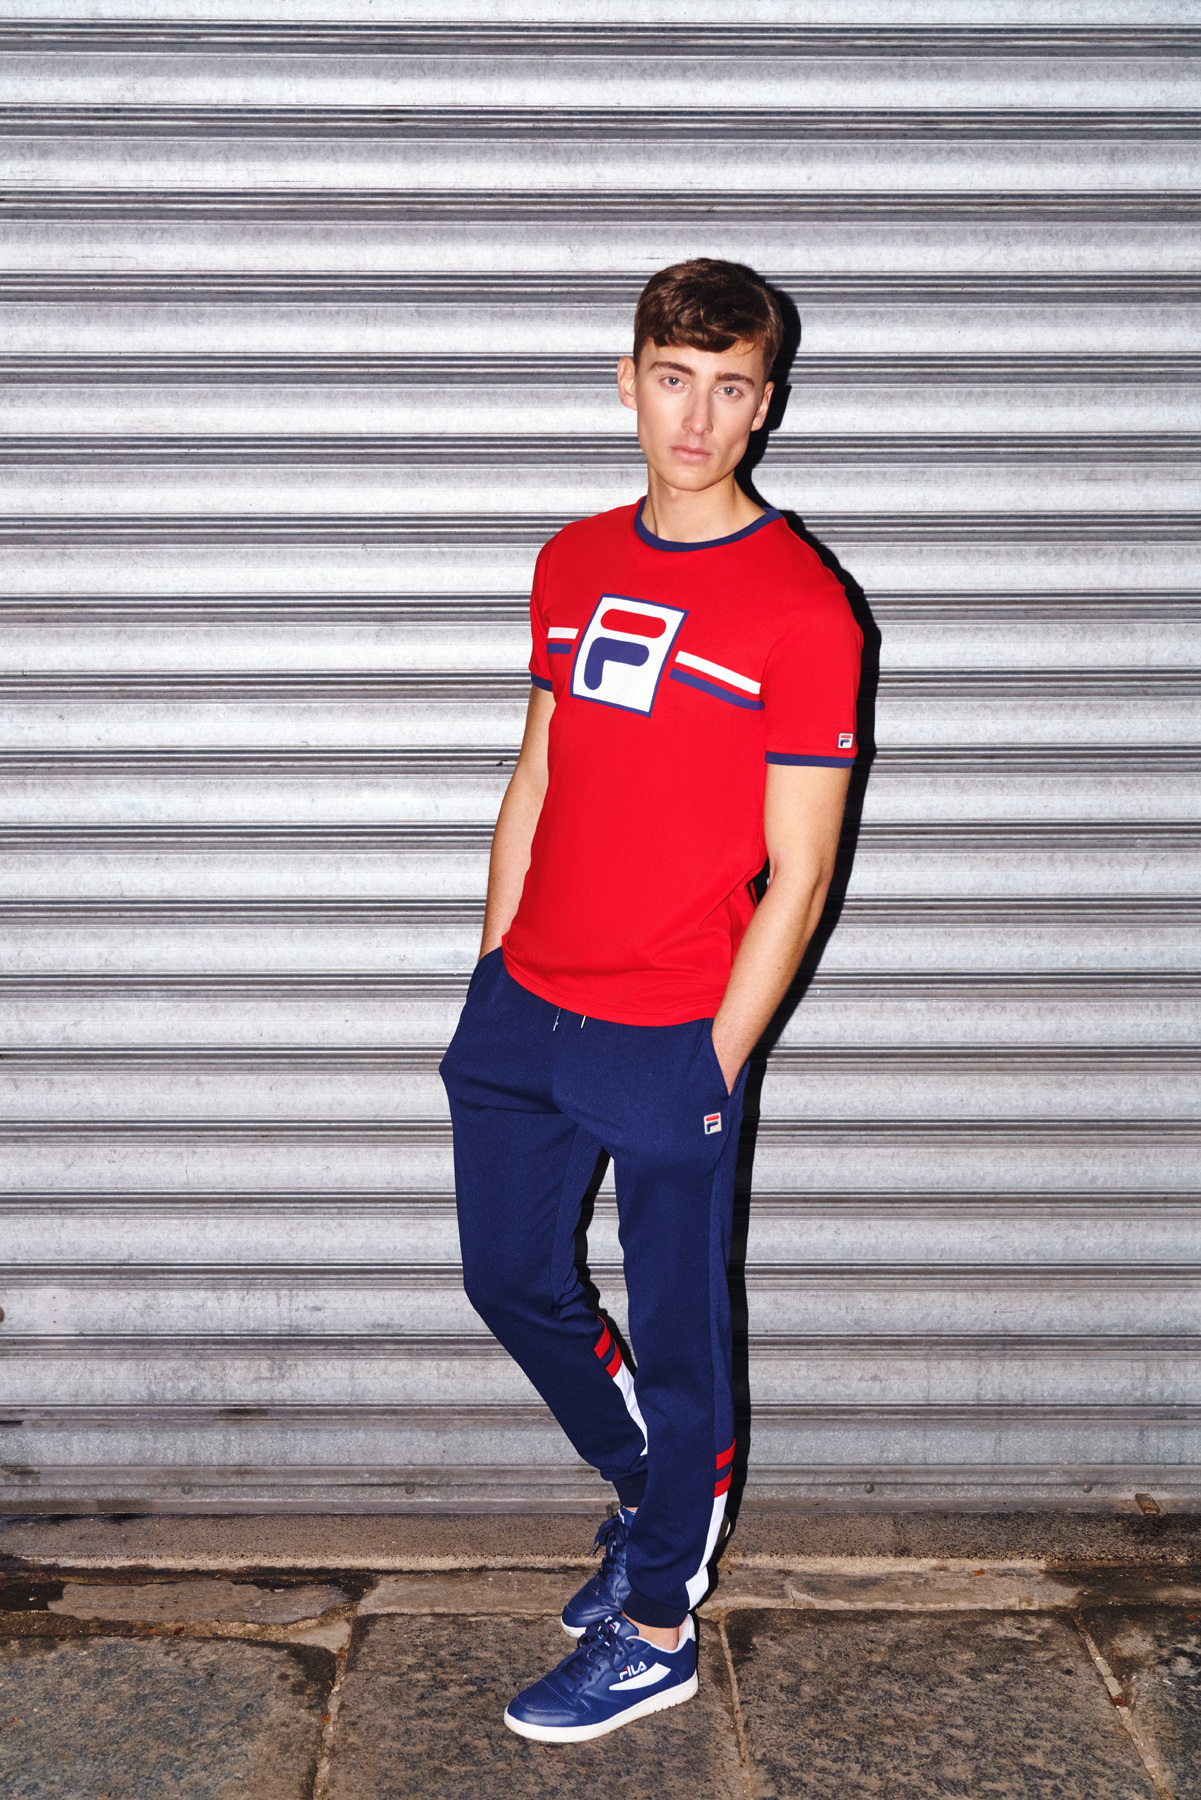 FILA Heritage Collection 2017 Retro Line Lookbook ...